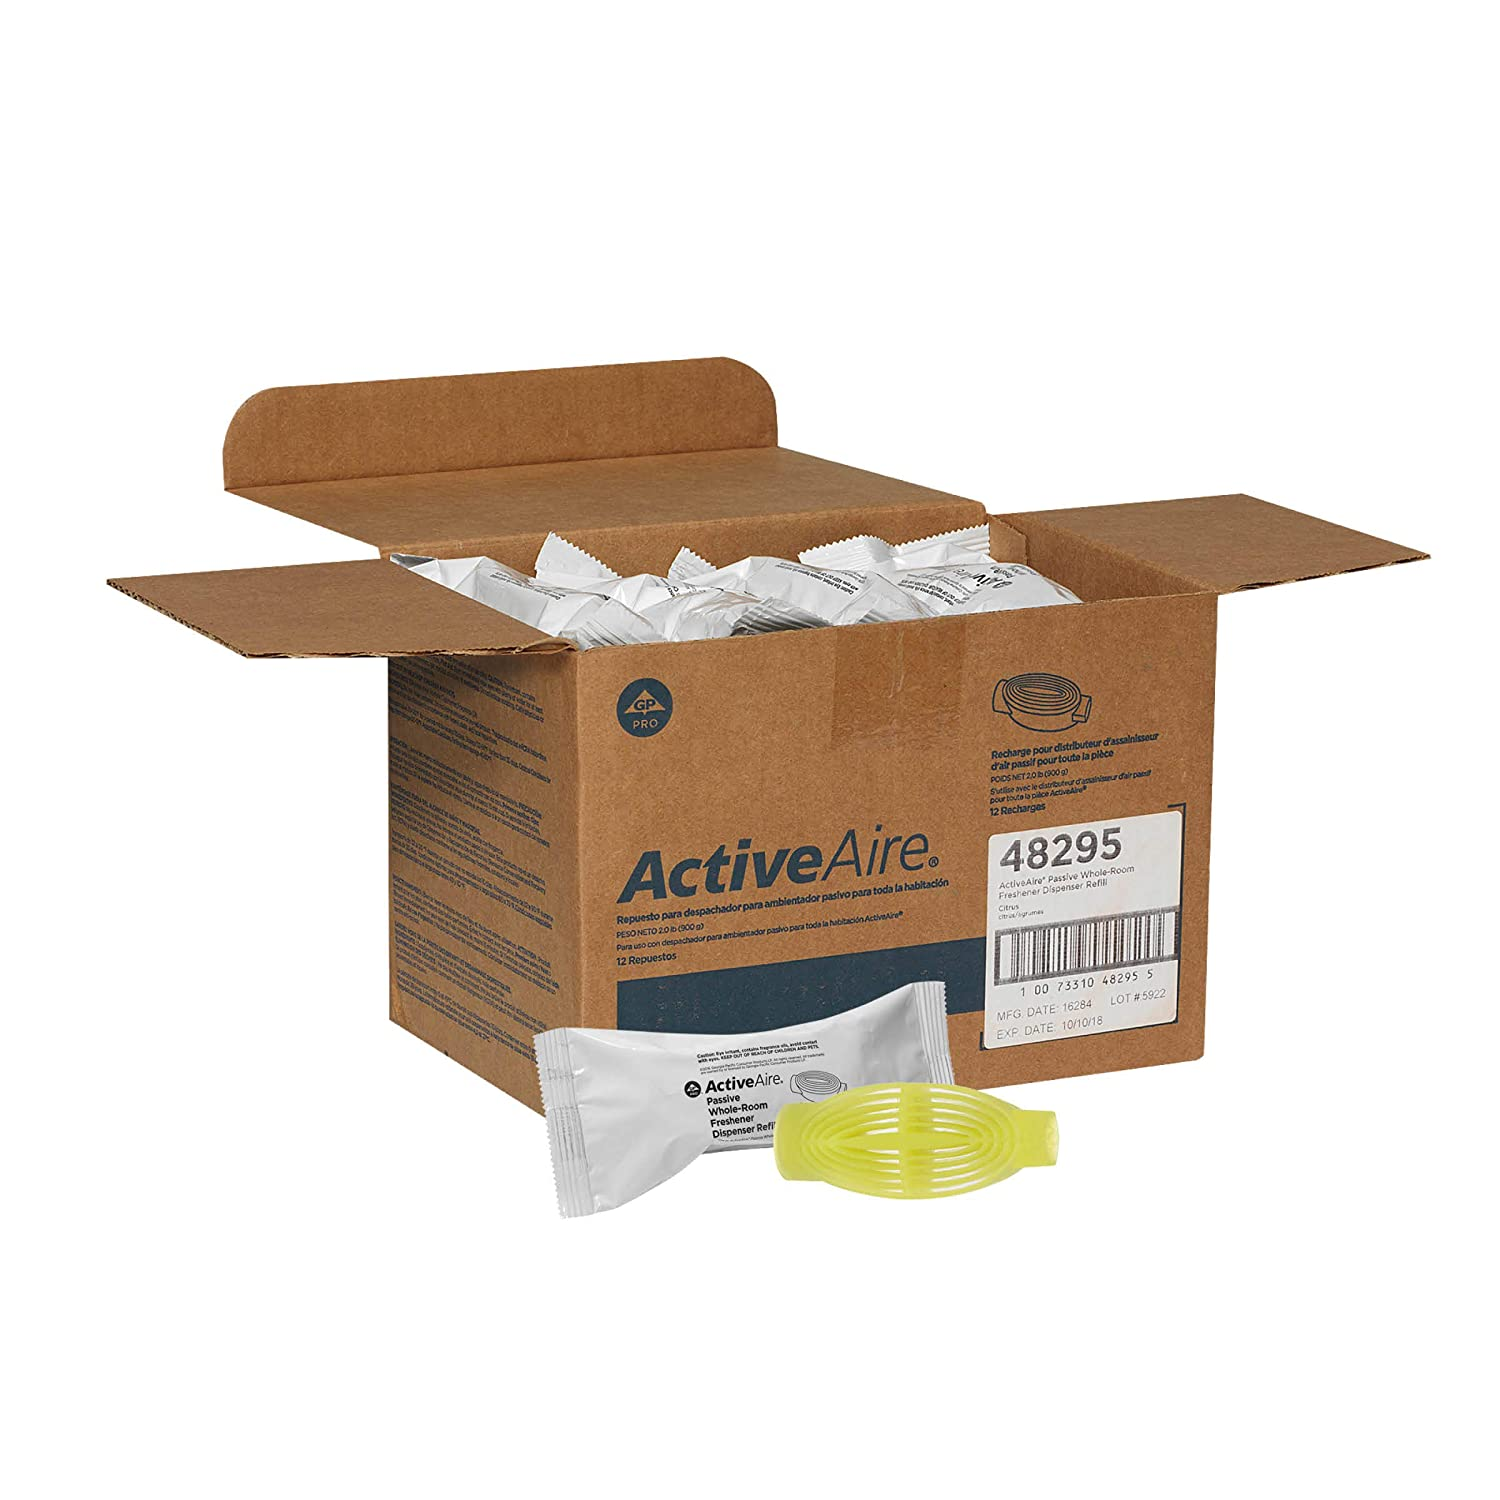 ActiveAire Passive Whole-Room Freshener Dispenser Refill by GP PRO (Georgia-Pacific), Breezy Linen, 48293, 12 Cartridges Per Case: Amazon.com: Industrial & ...